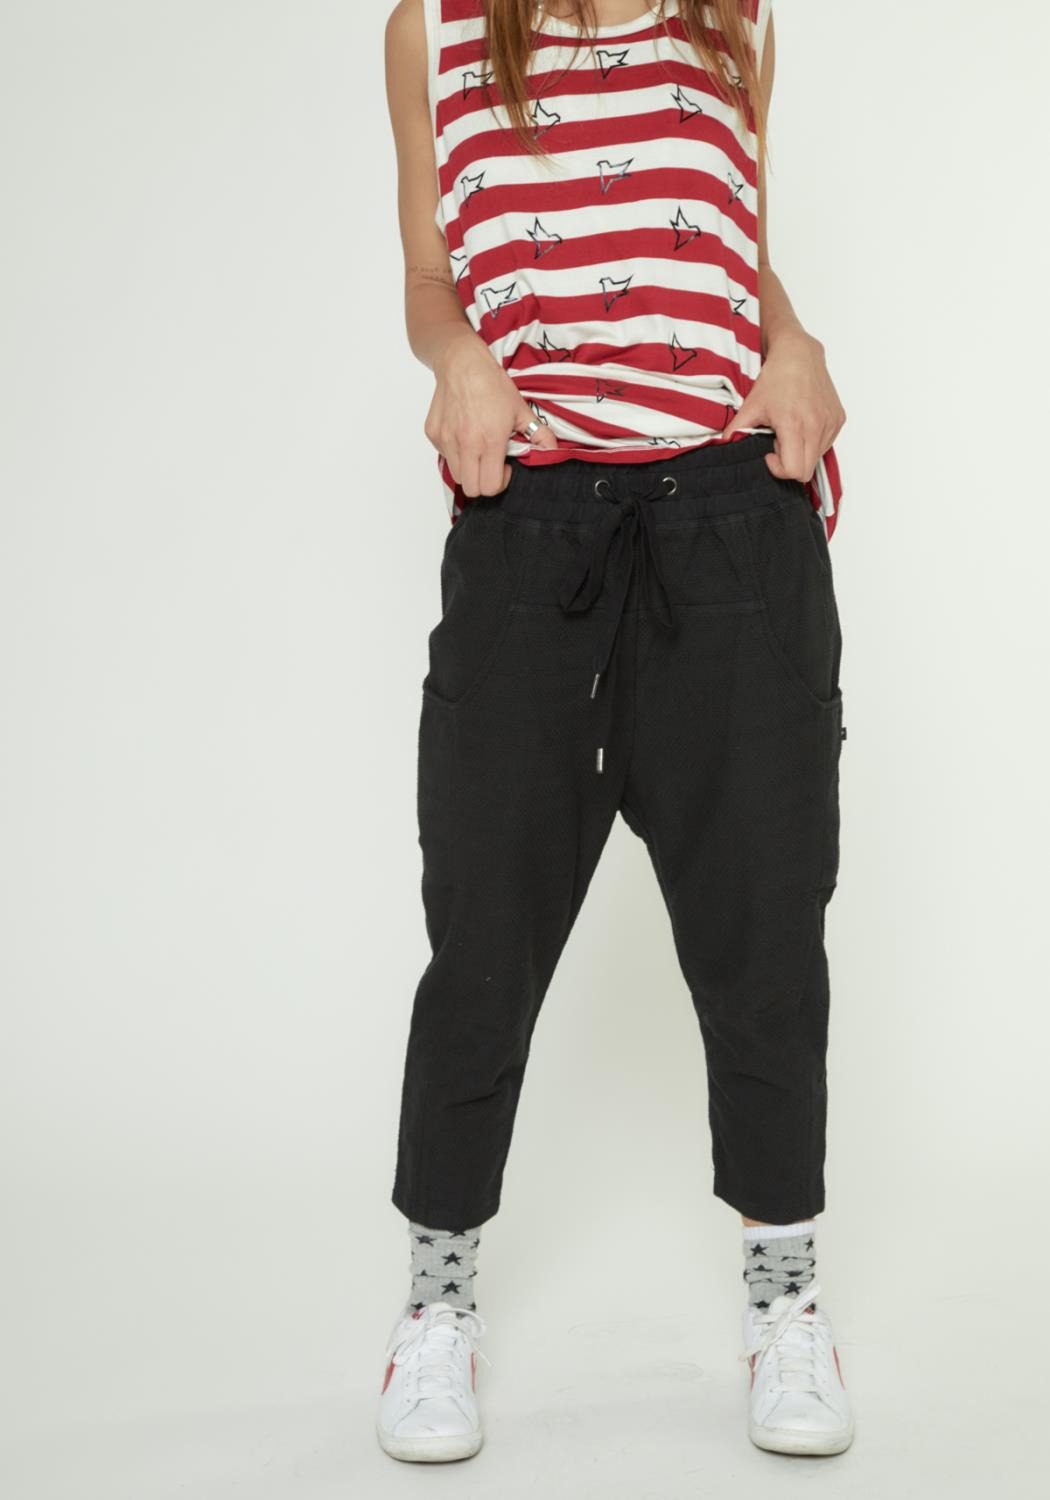 MENS CROPPED PANTS WITH SIDE PANELS